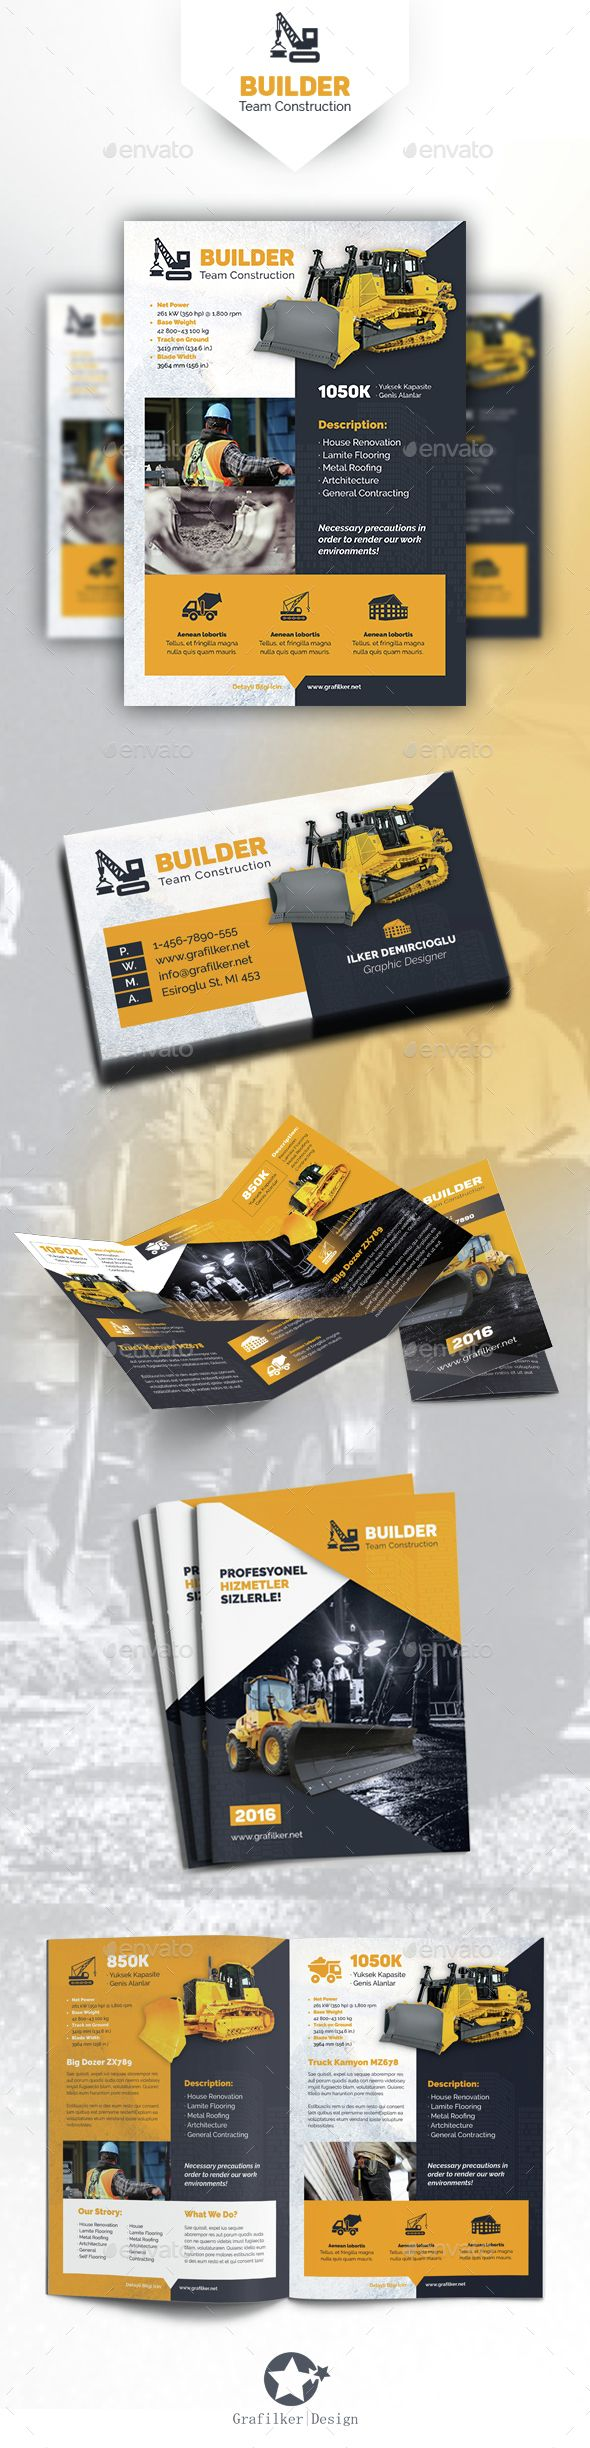 Construction Bundle Templates Flyer Template Construction And - Construction brochure templates